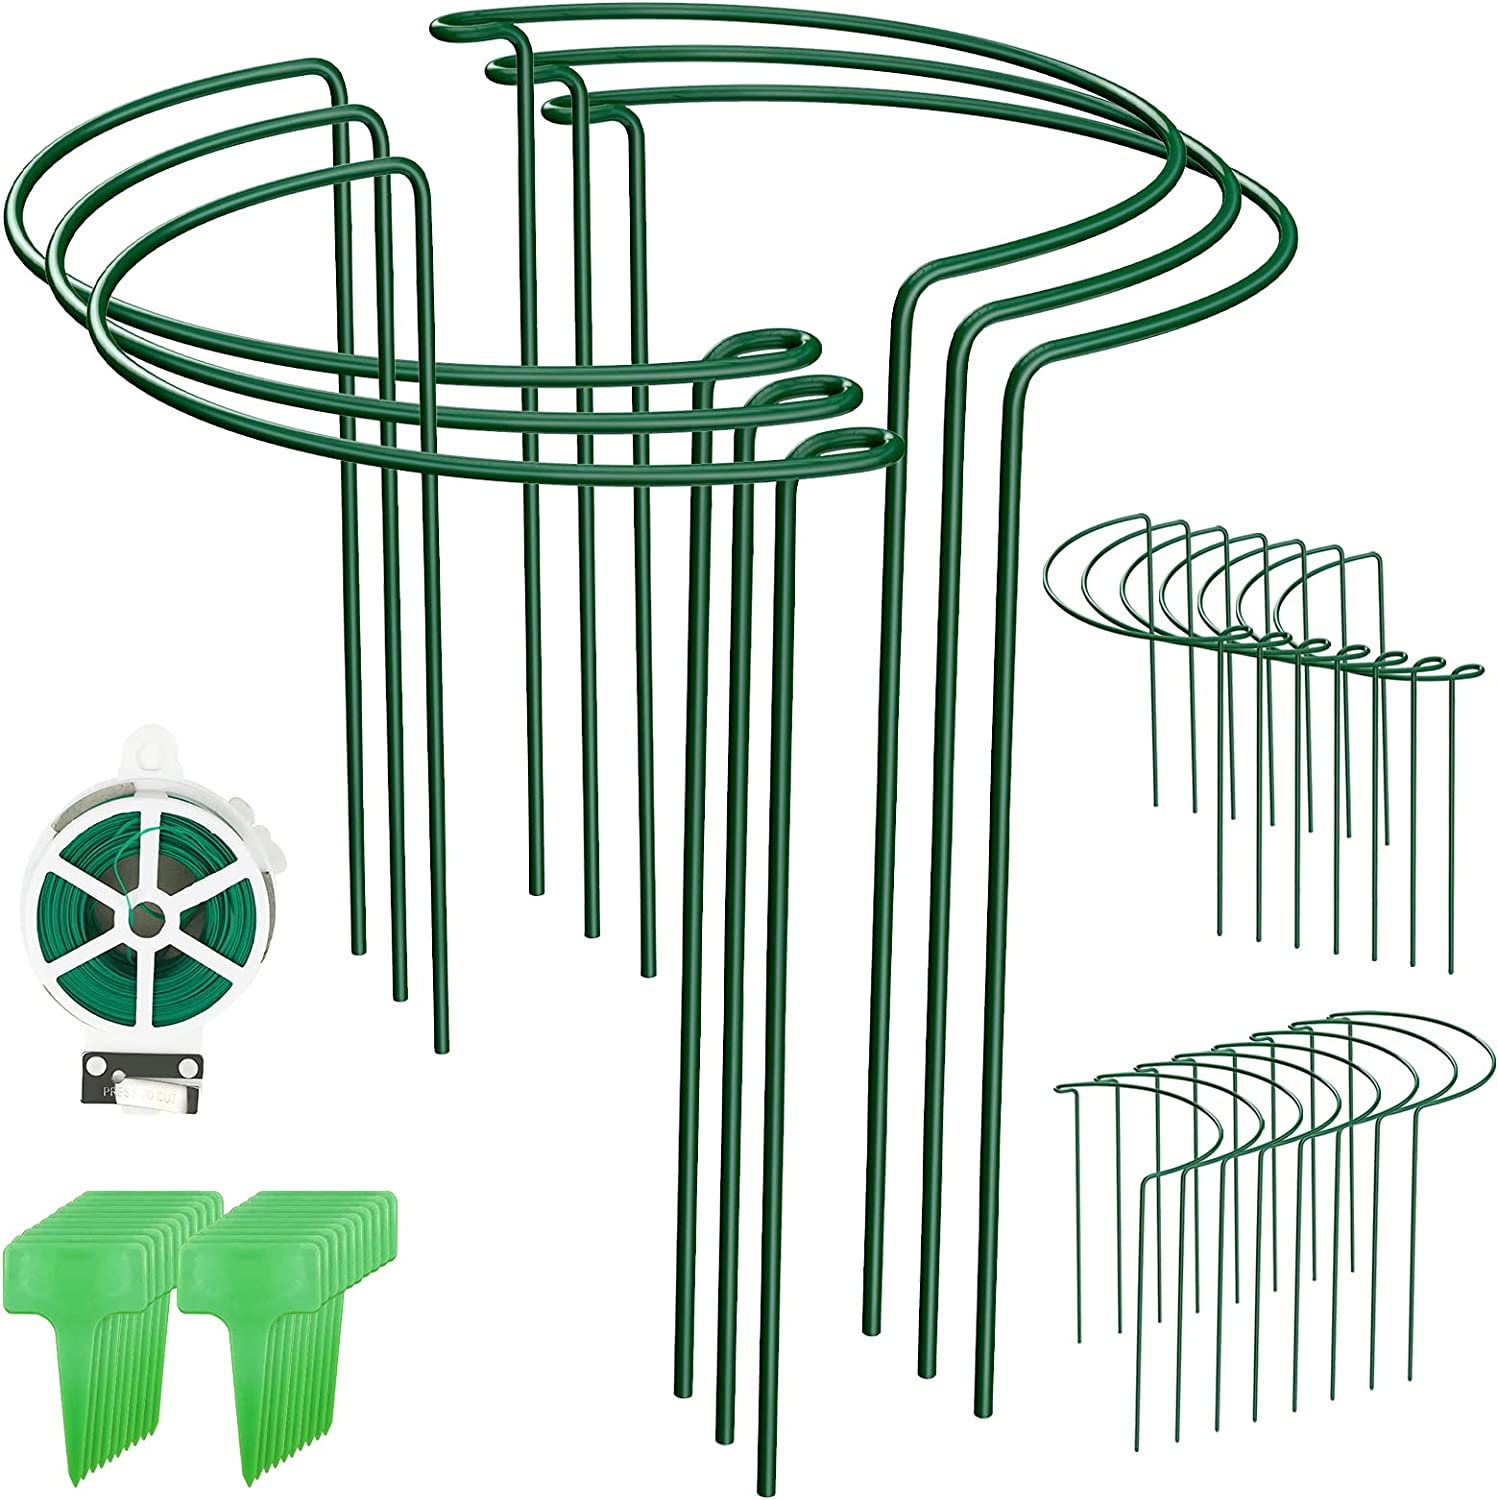 BLIKA 20 Pack Plant Support Stakes, Metal Garden Plant Stake, Outdoor Tall Plant Support Ring Cage, Half Round Plant Support Rings, Plant Supports for Outdoor Plants(10